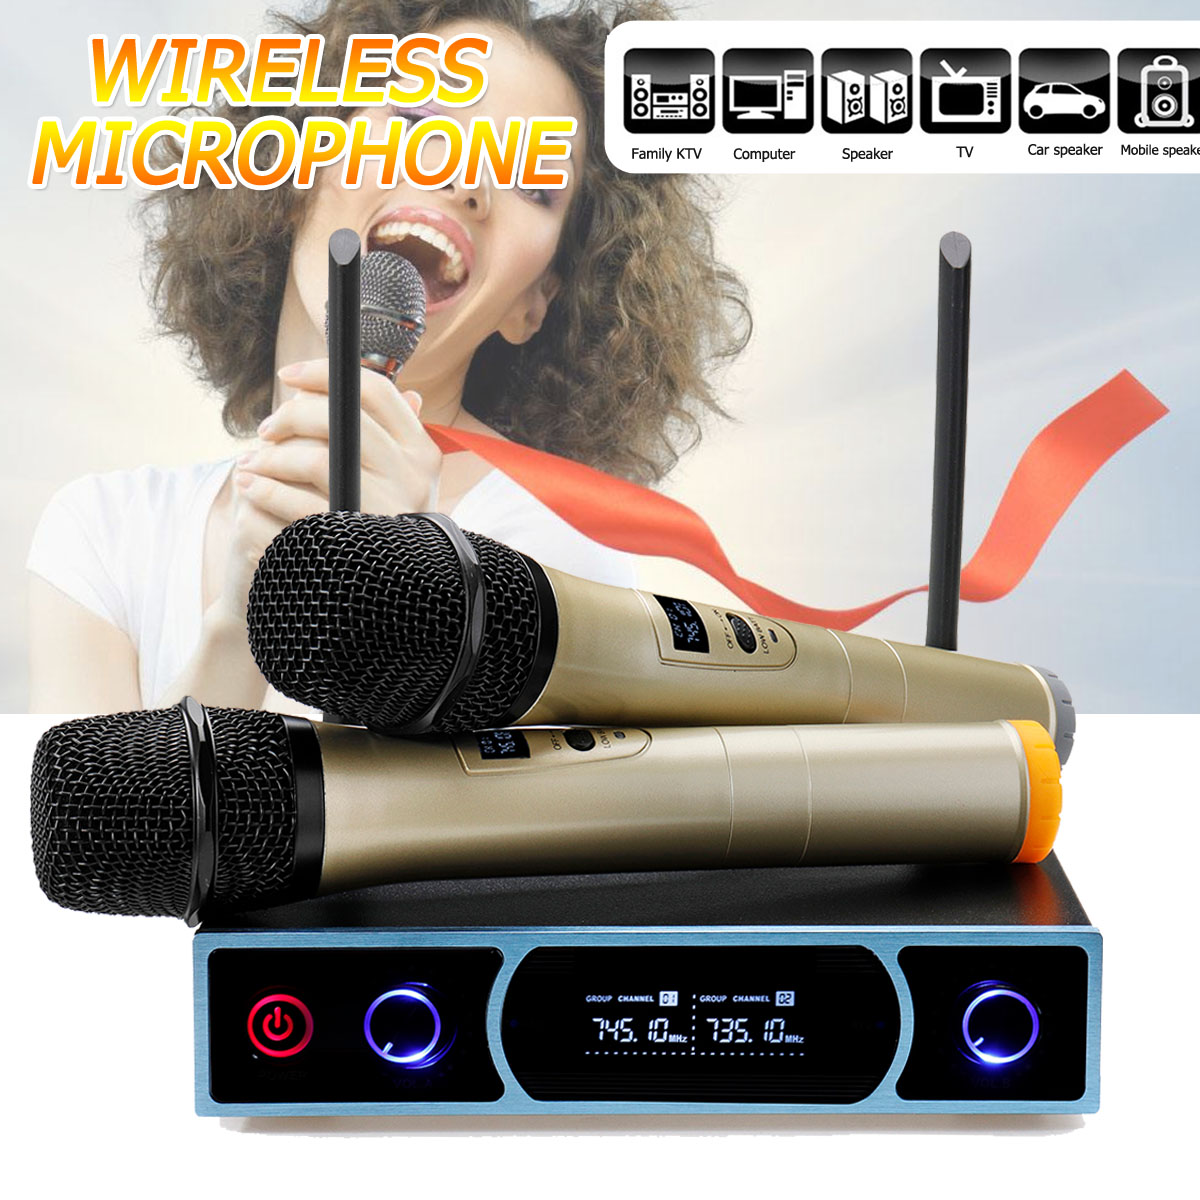 KINCO VHF Wireless Microphone System LCD Display Receiver Family Video Handheld Mic Party KTV Karaoke Power Amplifier SystemKINCO VHF Wireless Microphone System LCD Display Receiver Family Video Handheld Mic Party KTV Karaoke Power Amplifier System